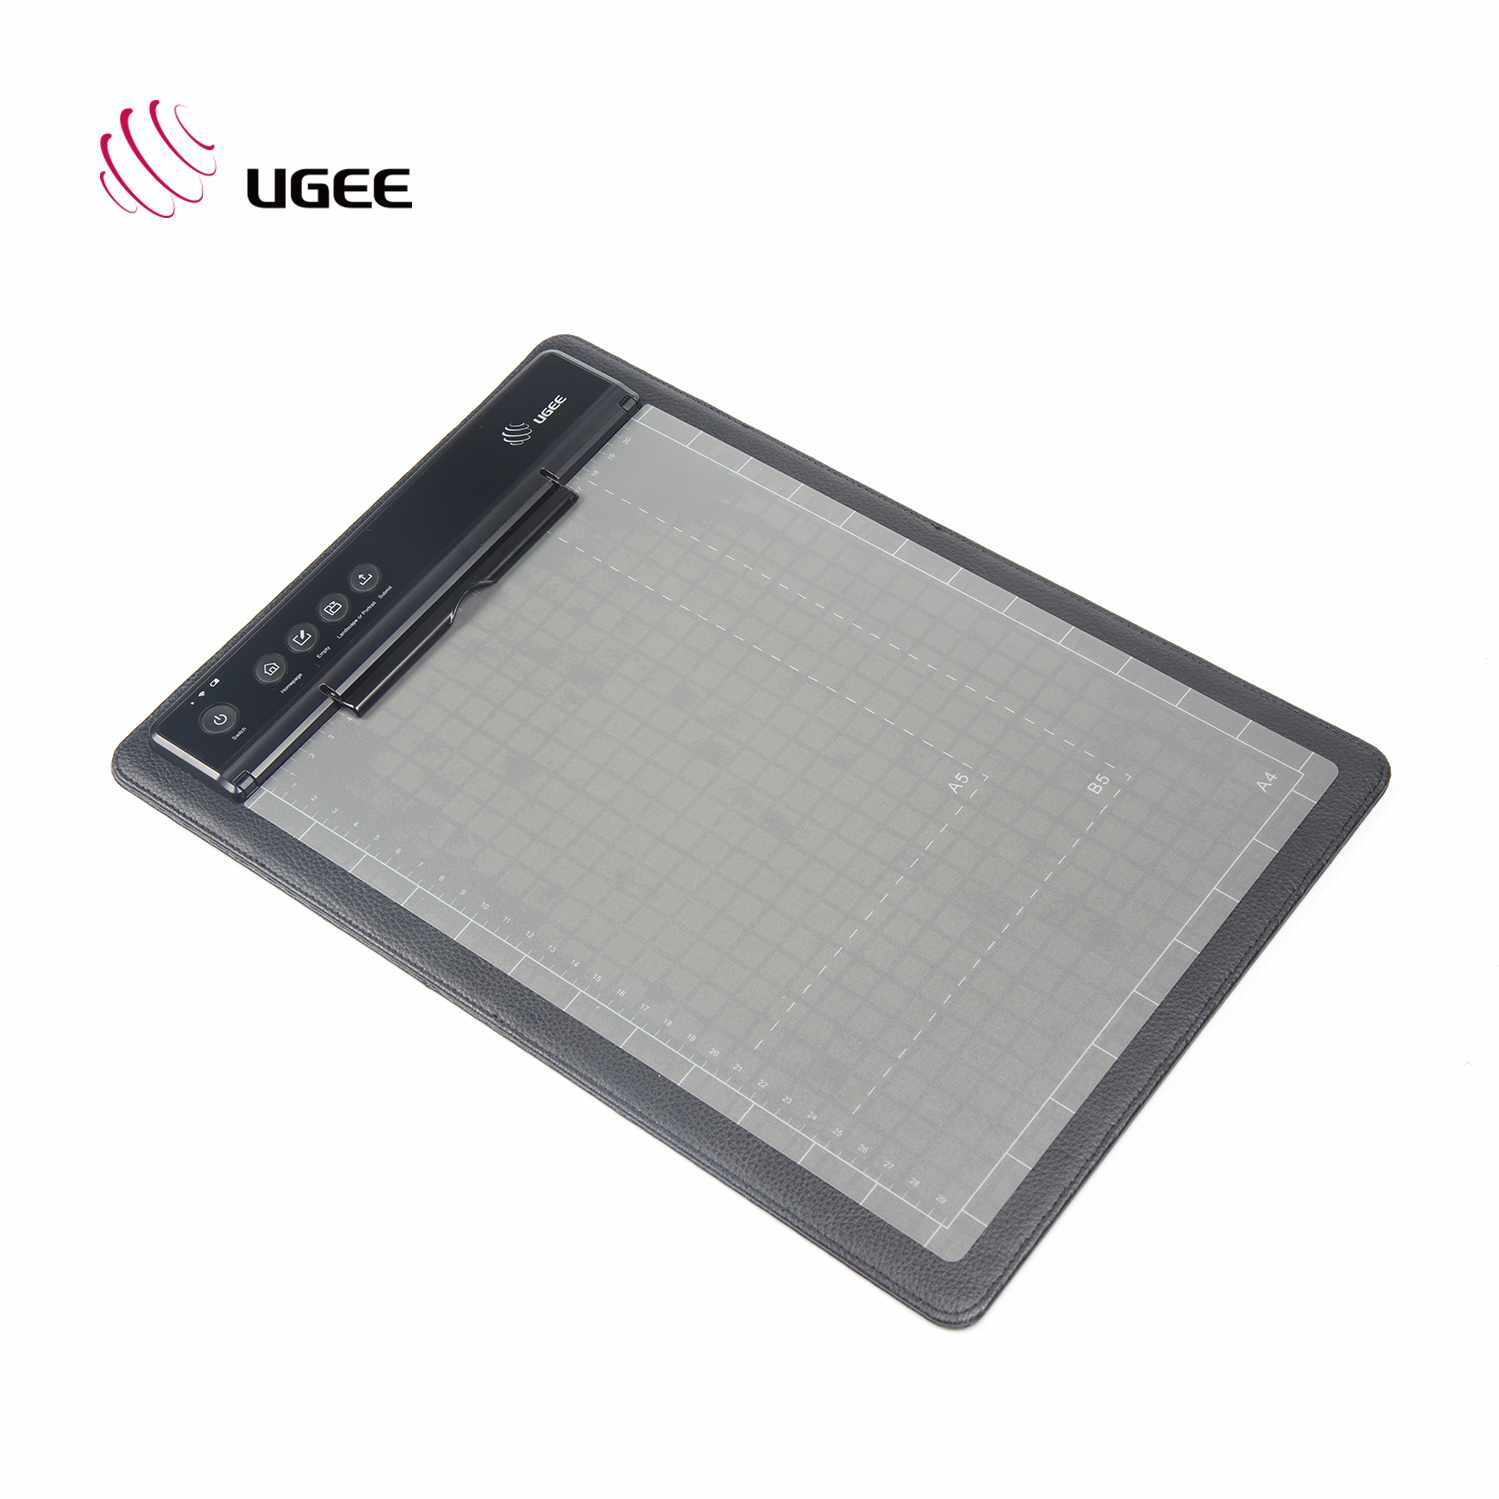 Ugee Android Saving A4 Paper Erasable Graphic Digital Electronic  Educational Wireless Wifi Handwriting Tablet Digital Handwriting image5